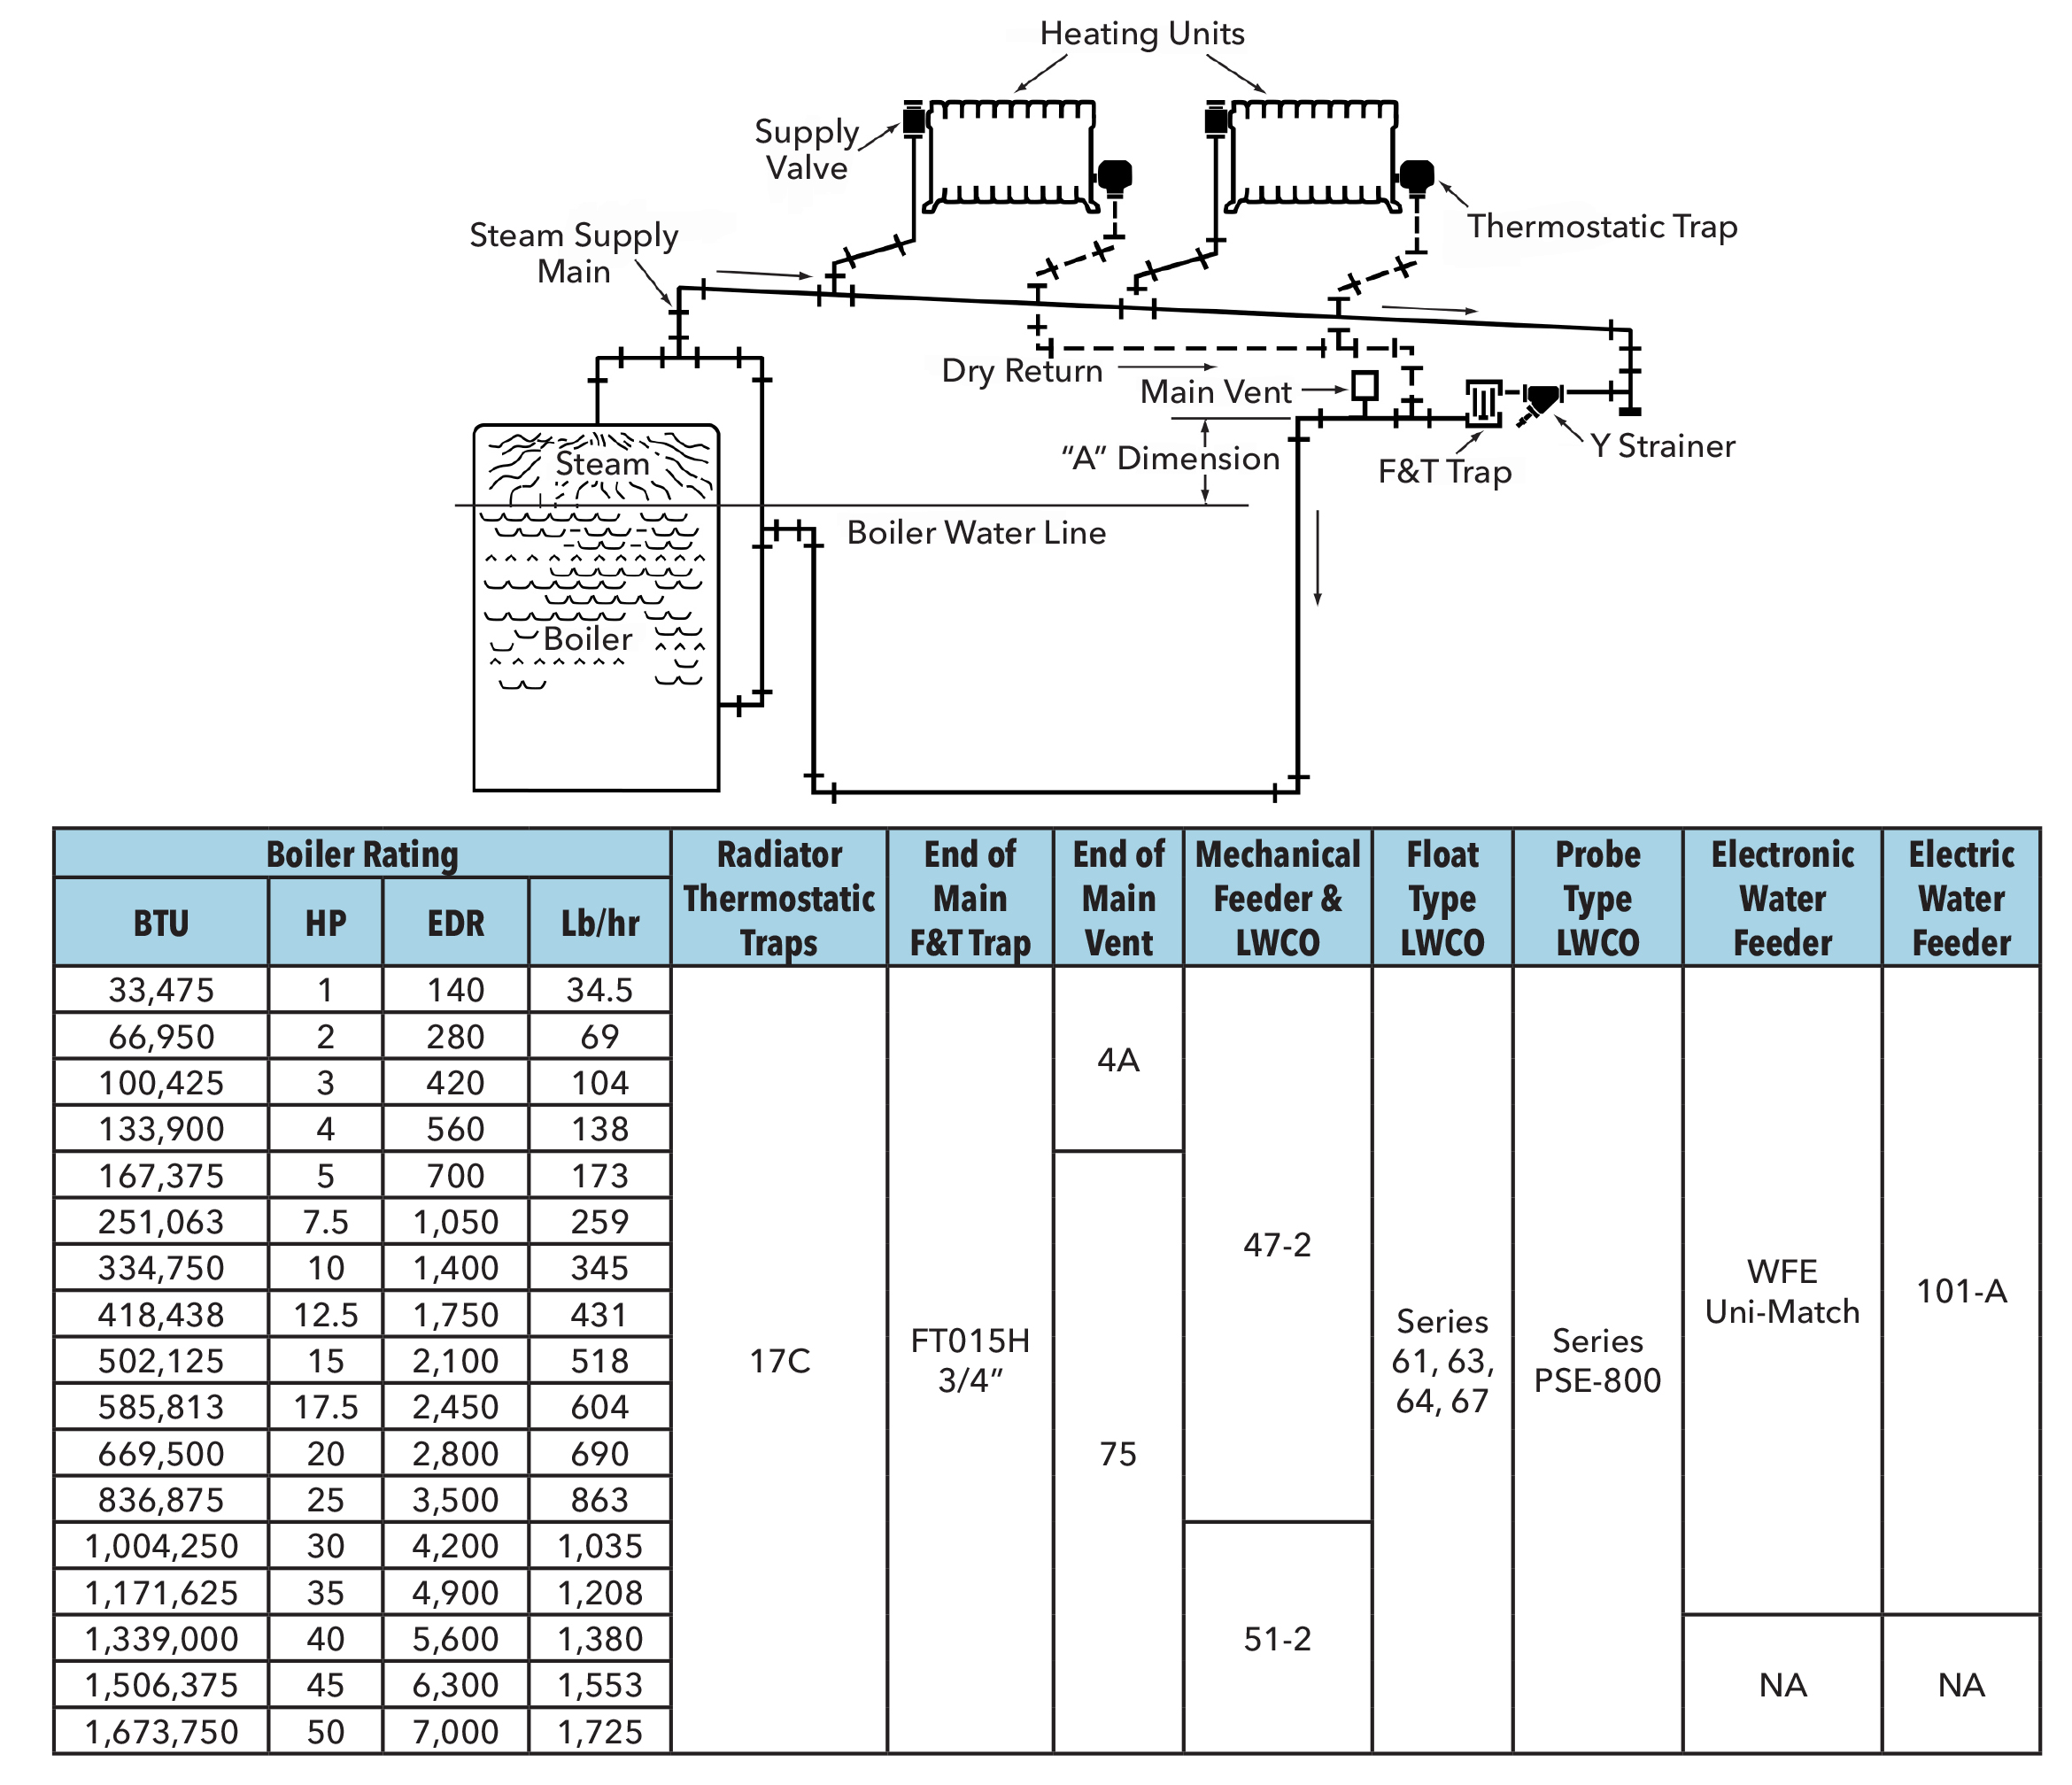 Piping layout and suggested product for two pipe gravity return systems based on system size